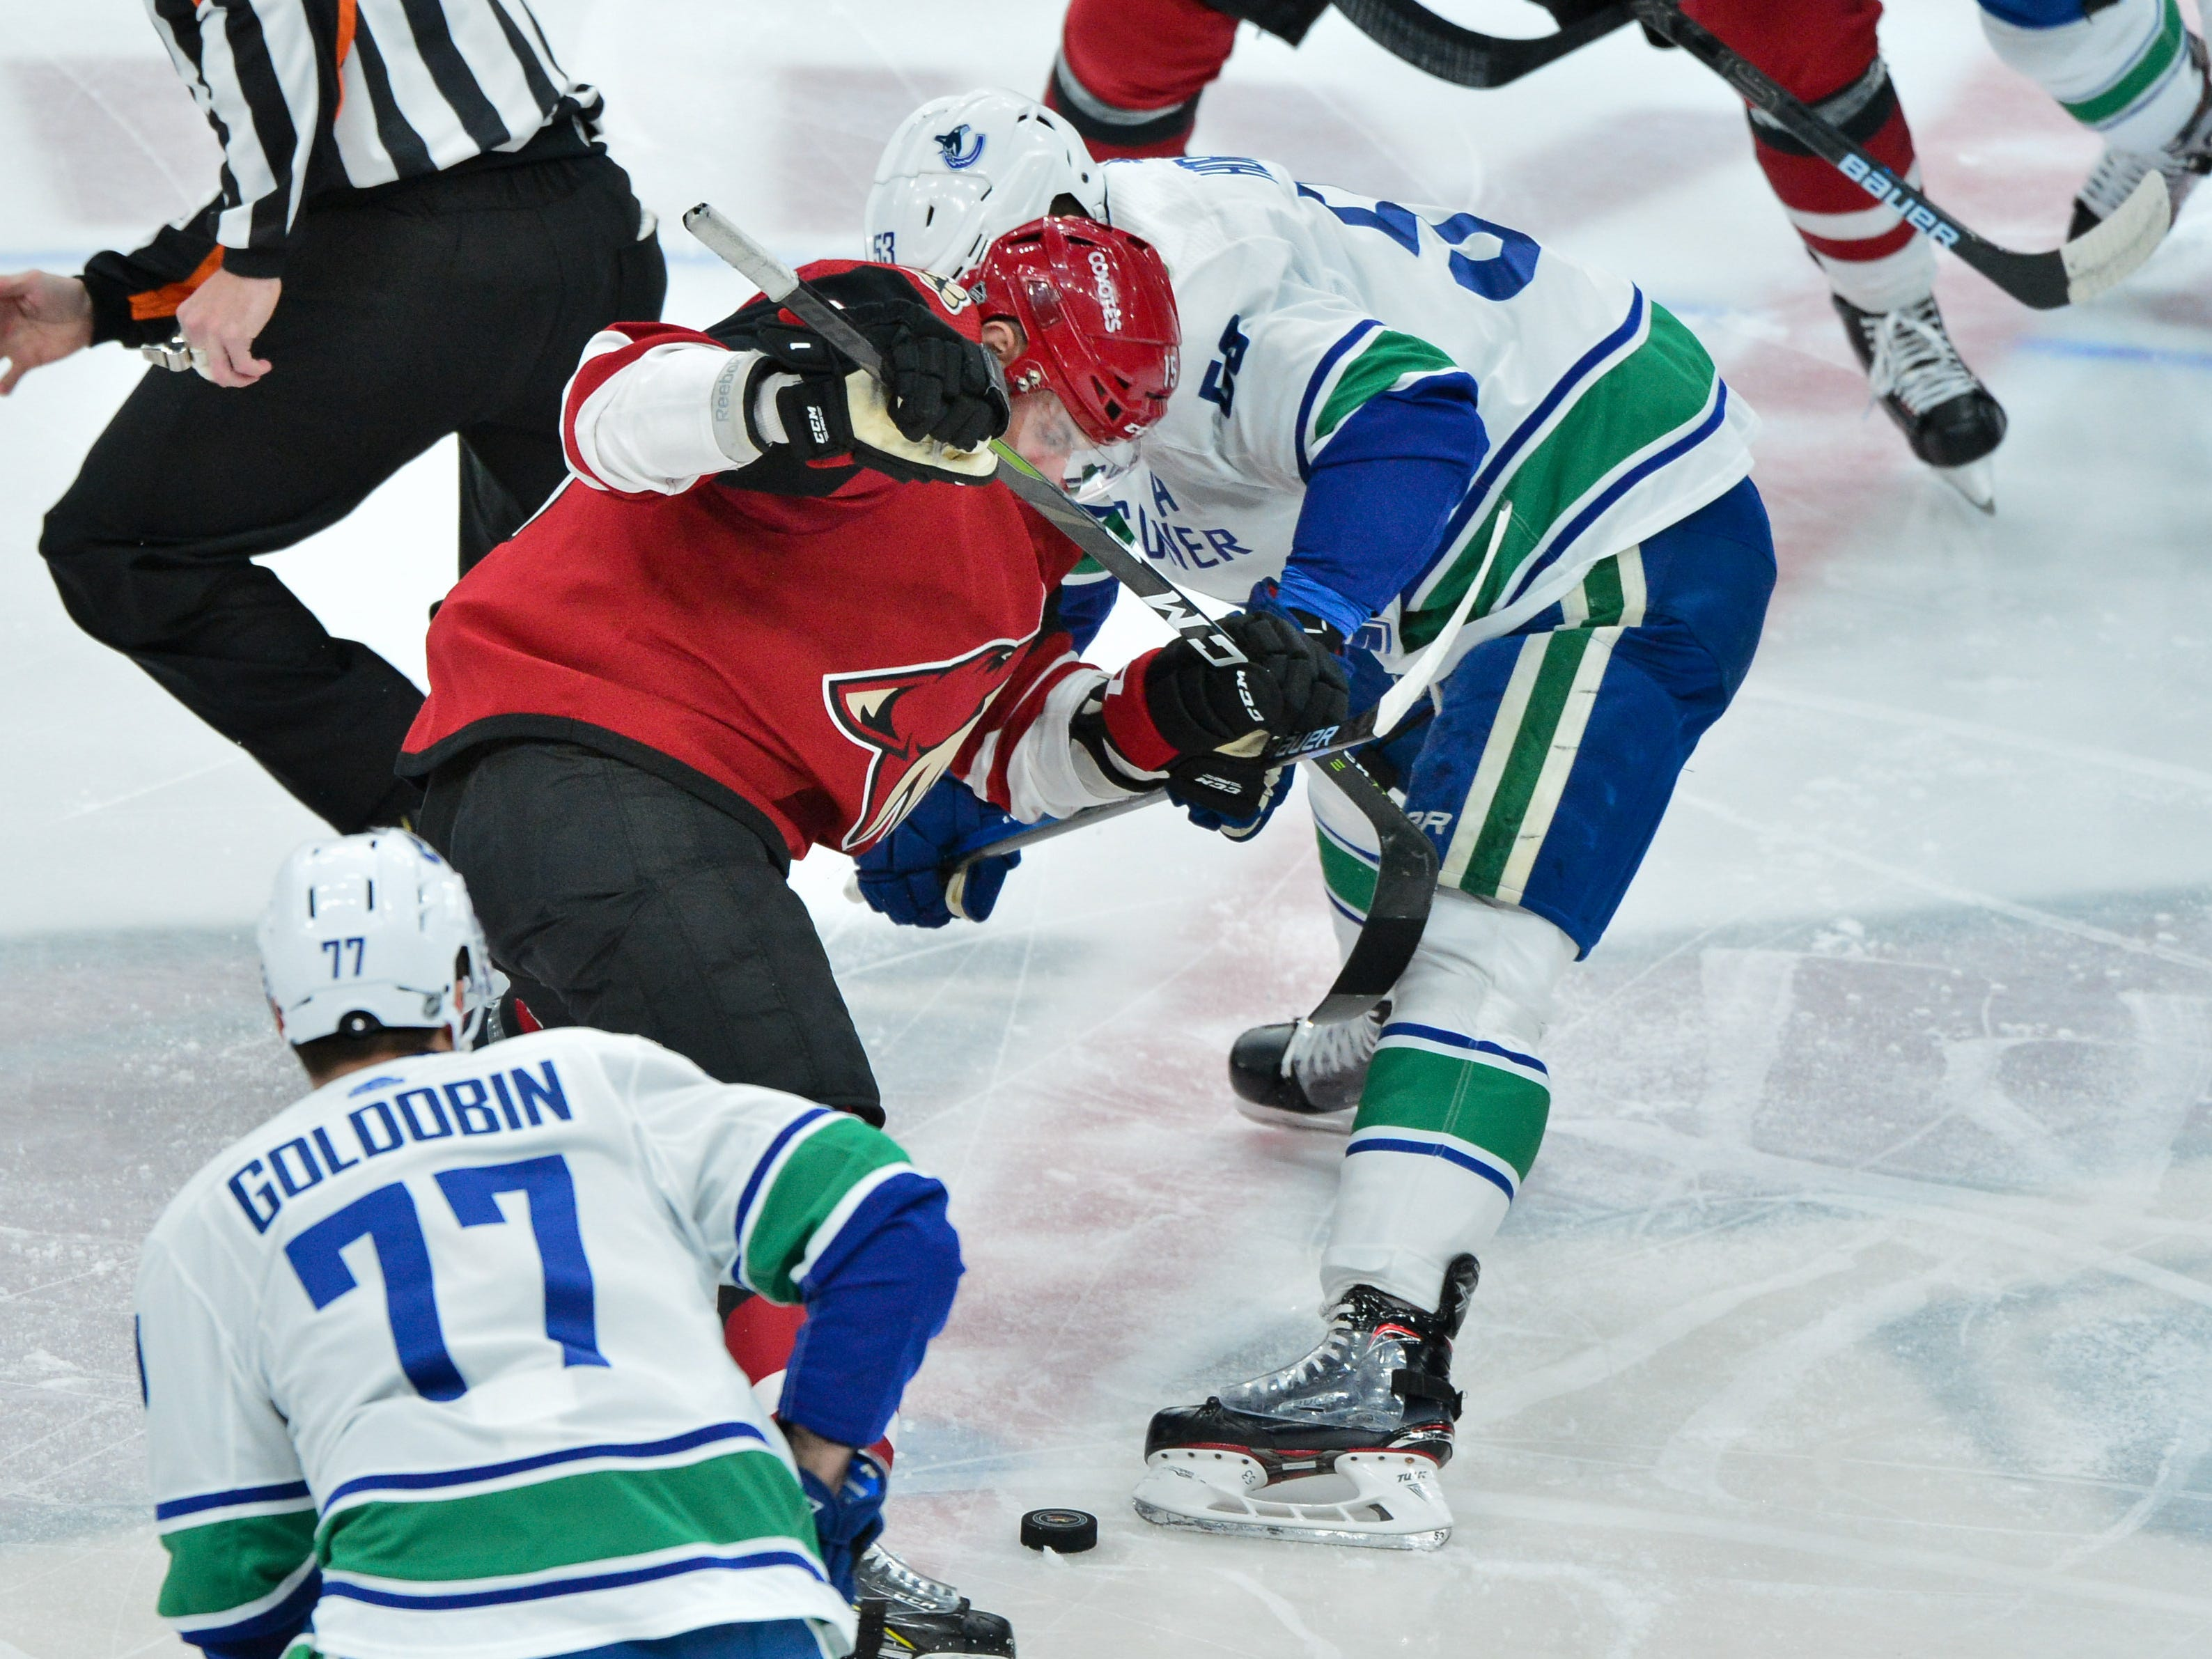 Feb 28, 2019; Glendale, AZ, USA; Arizona Coyotes center Brad Richardson (15) and Vancouver Canucks center Bo Horvat (53) battle for a face-off in the first period at Gila River Arena.